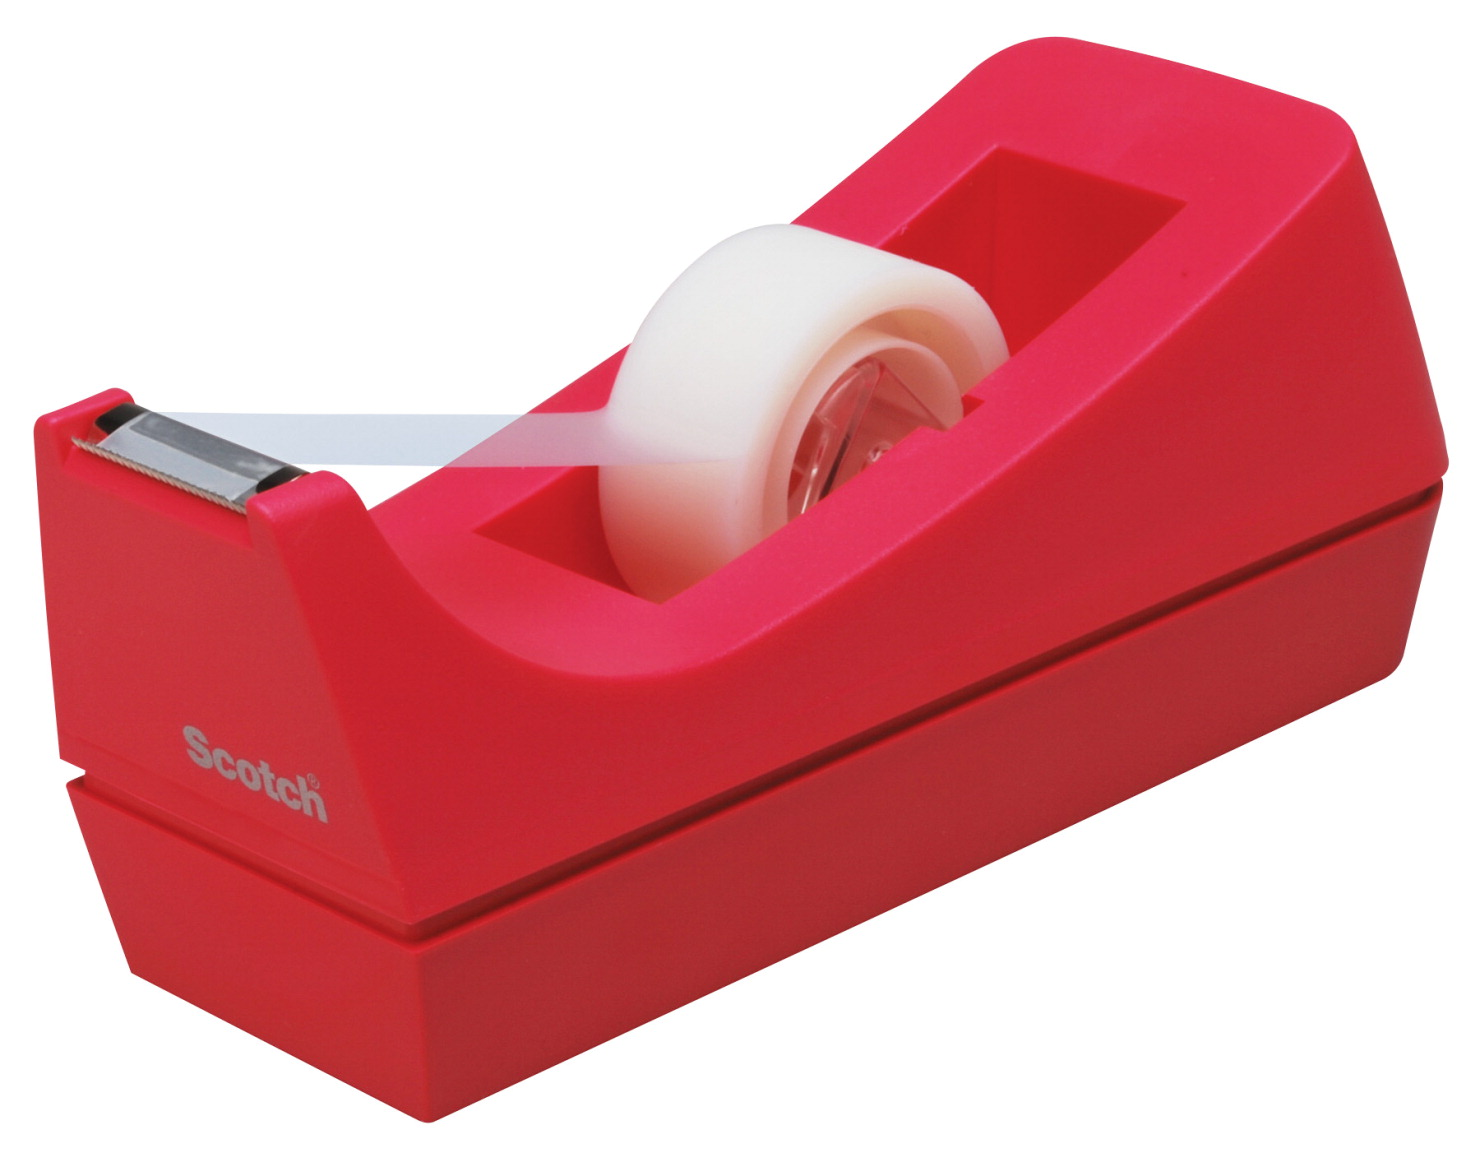 Scotch Classic High Impact Resistant Desktop Tape Dispenser with 1 in Core, 3/4 x 1500 in Tape, Pink